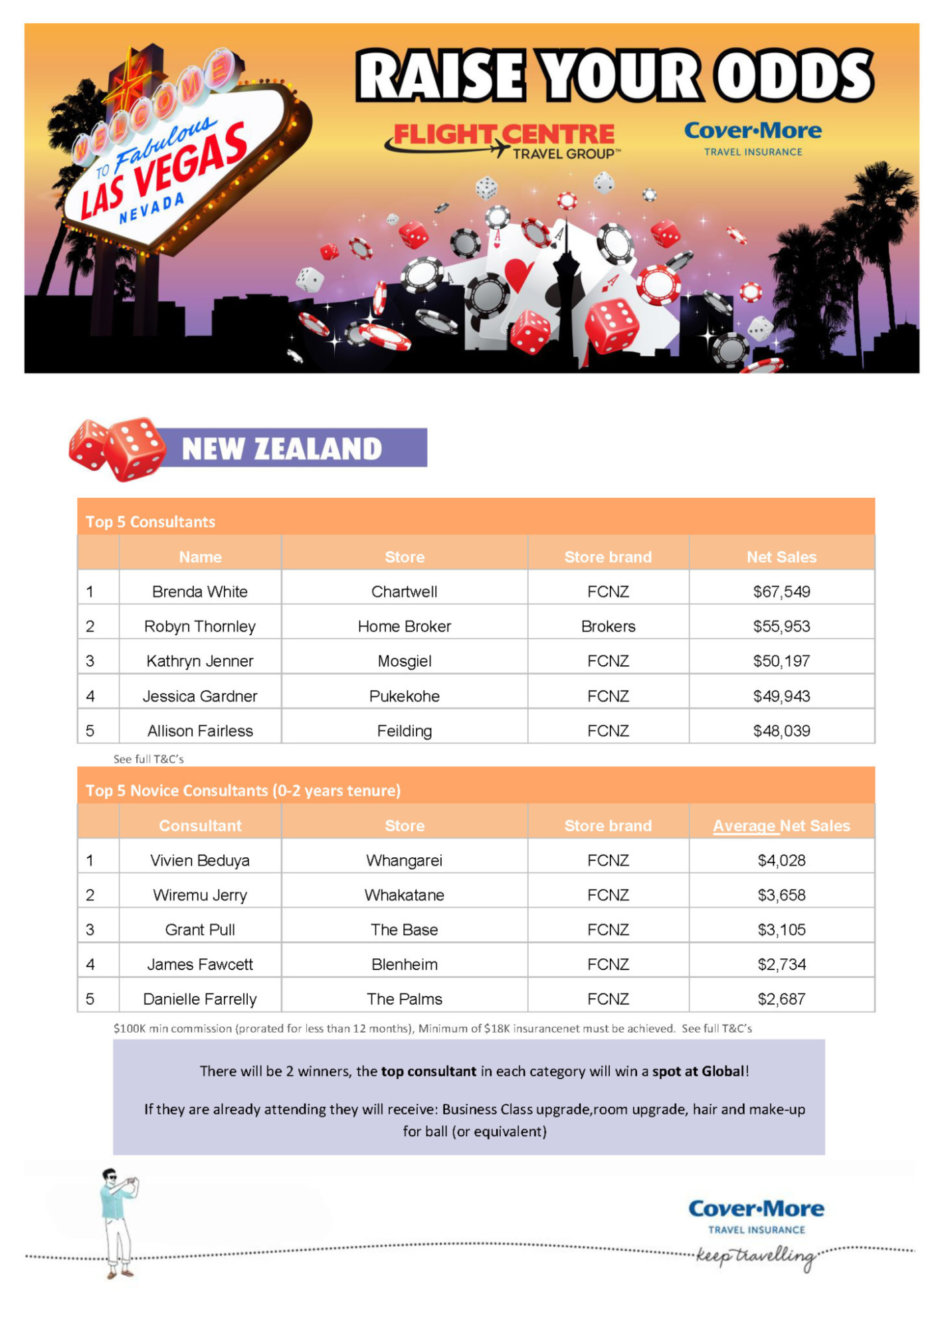 2019 Las Vegas New Zealand Globals Rankings March